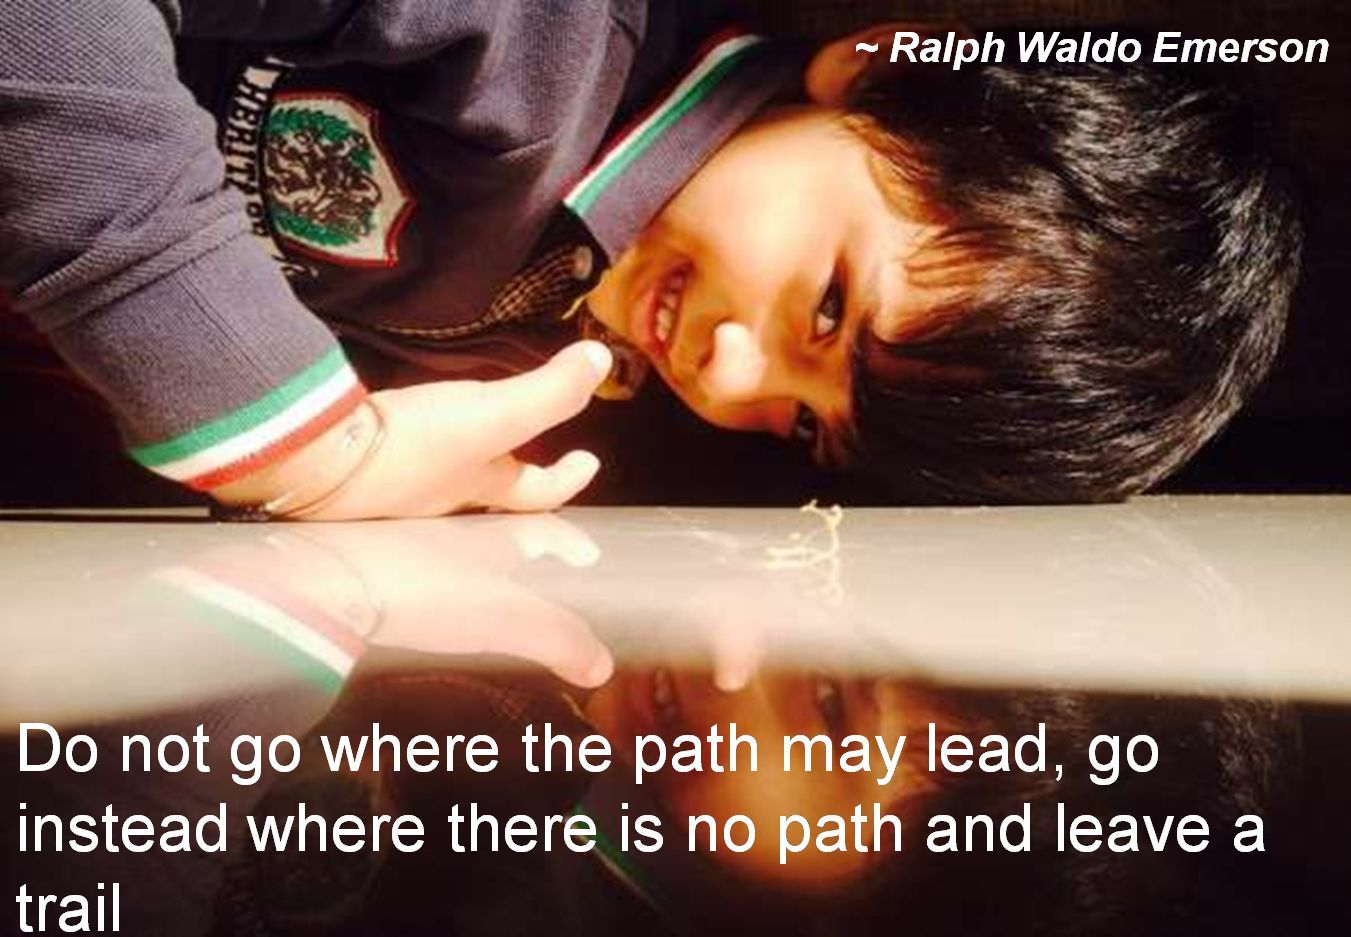 Ralph Waldo Emerson- Do not go where the path may lead, go instead where there is no path and leave a trail